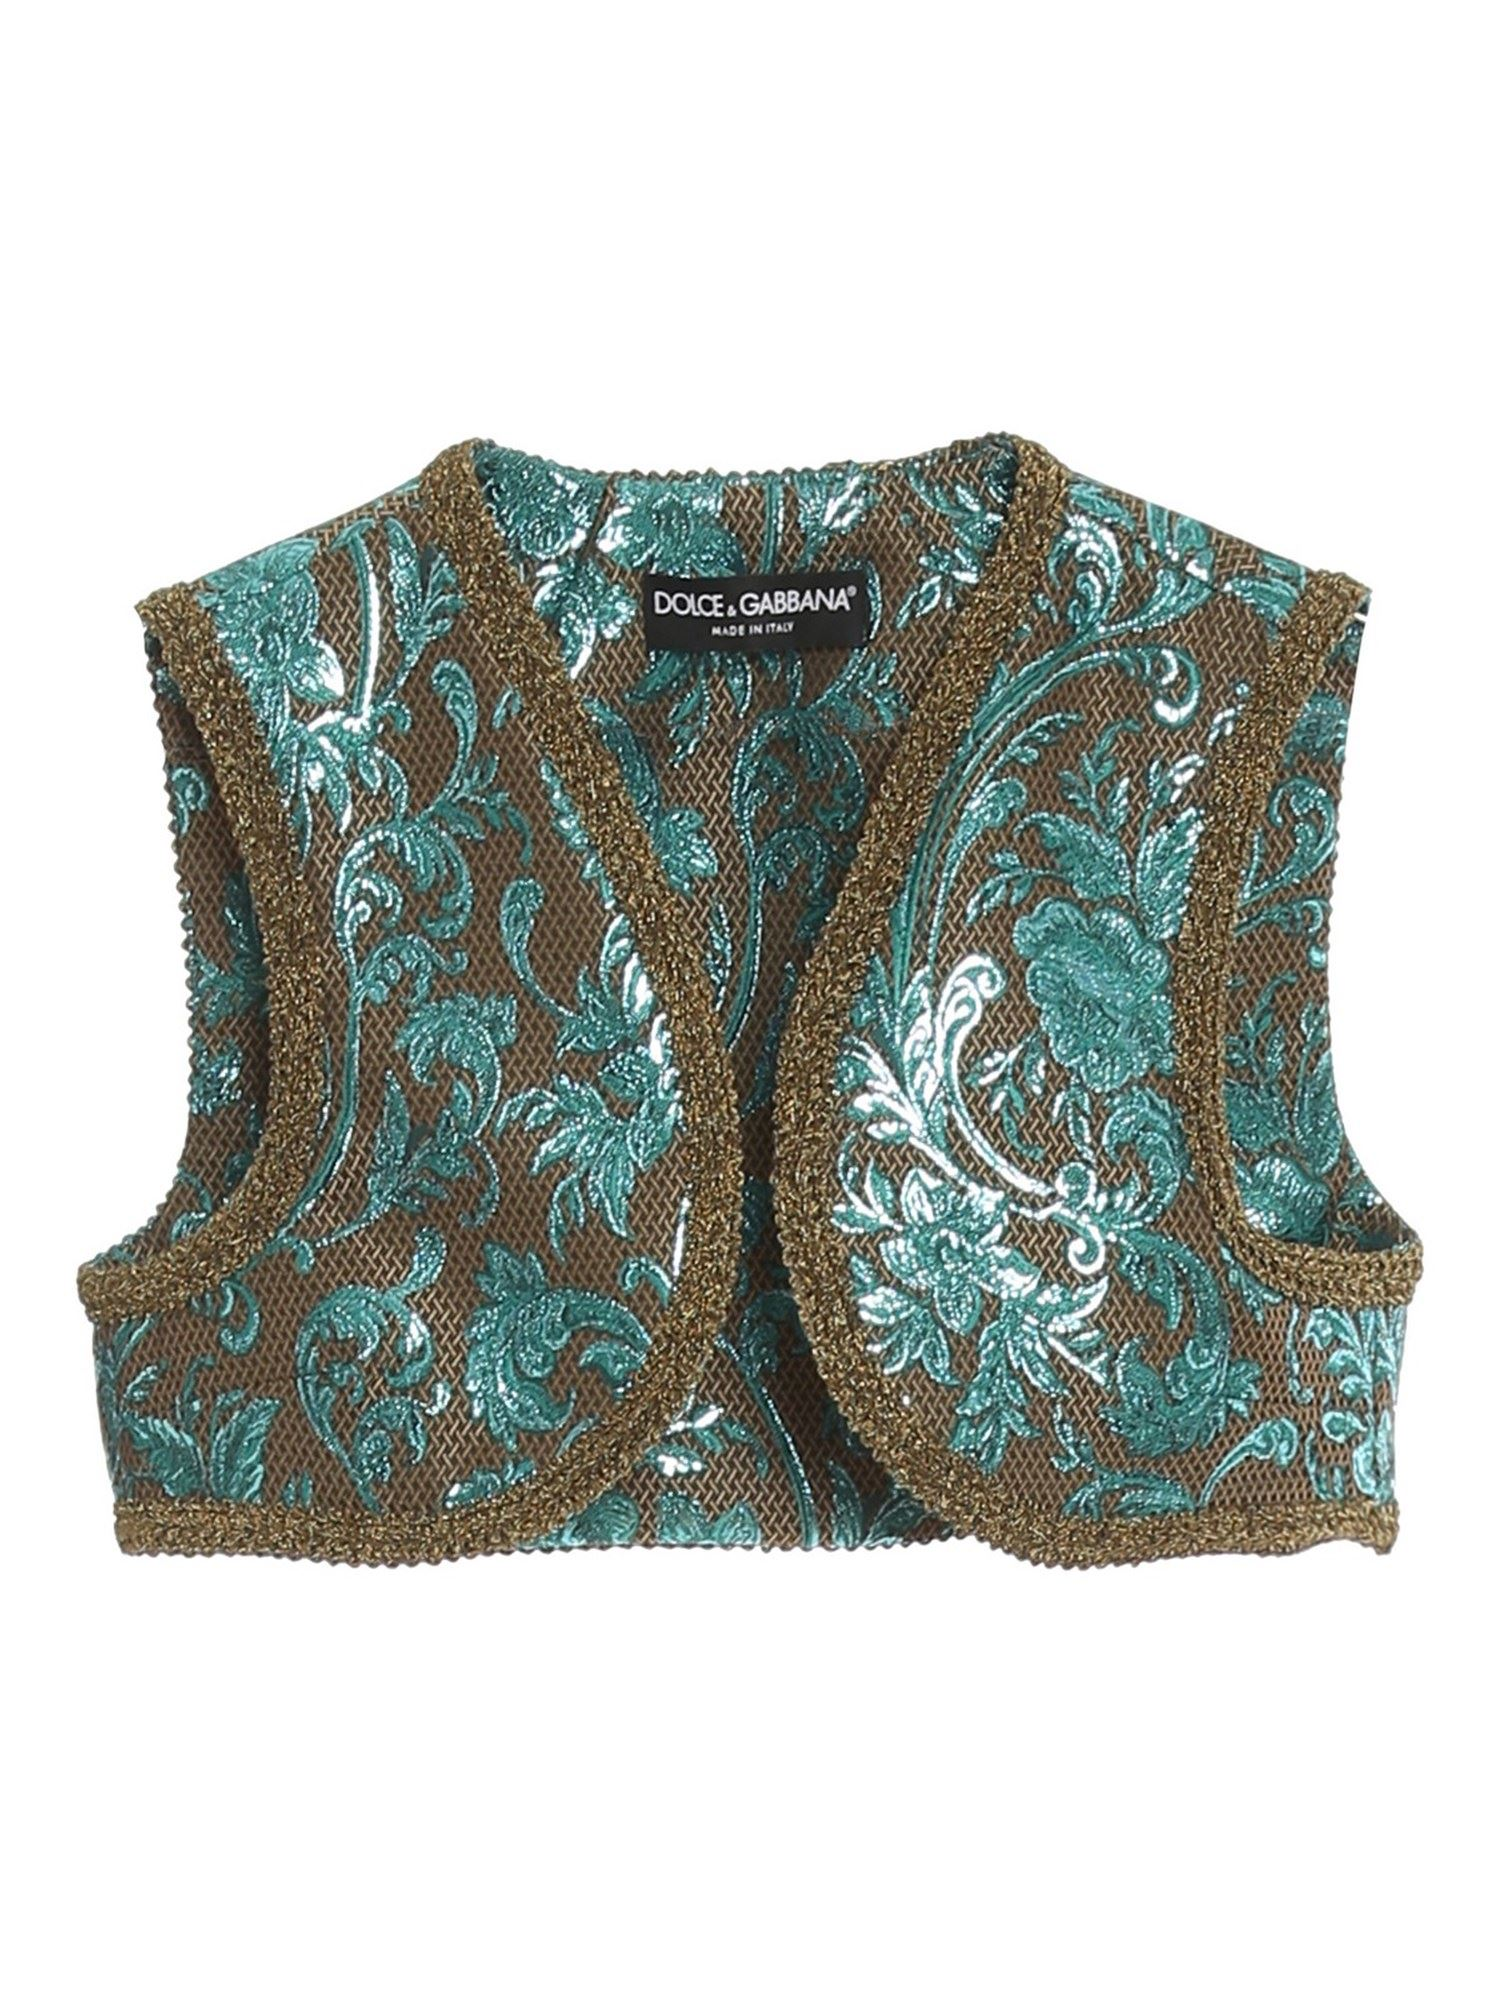 Dolce & Gabbana DAMASK CROPPED GILET IN MULTICOLOR